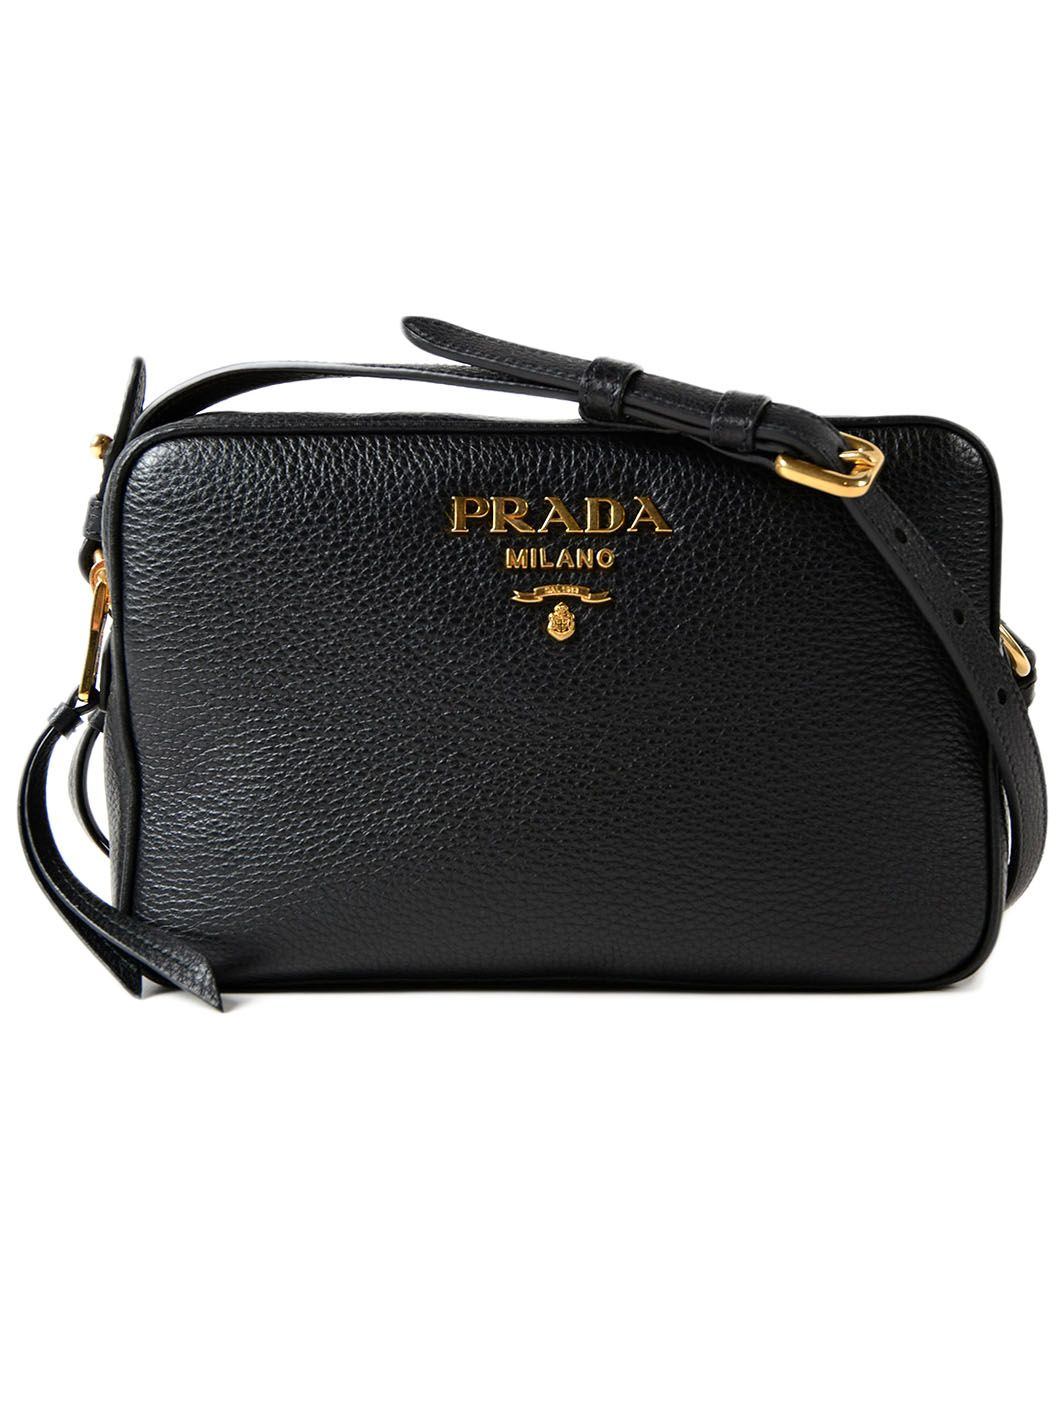 22641eb0822e ... messenger bag neiman marcus 8fc51 363a5; discount code for prada  crossbody vit.daino fcc70 9d71f